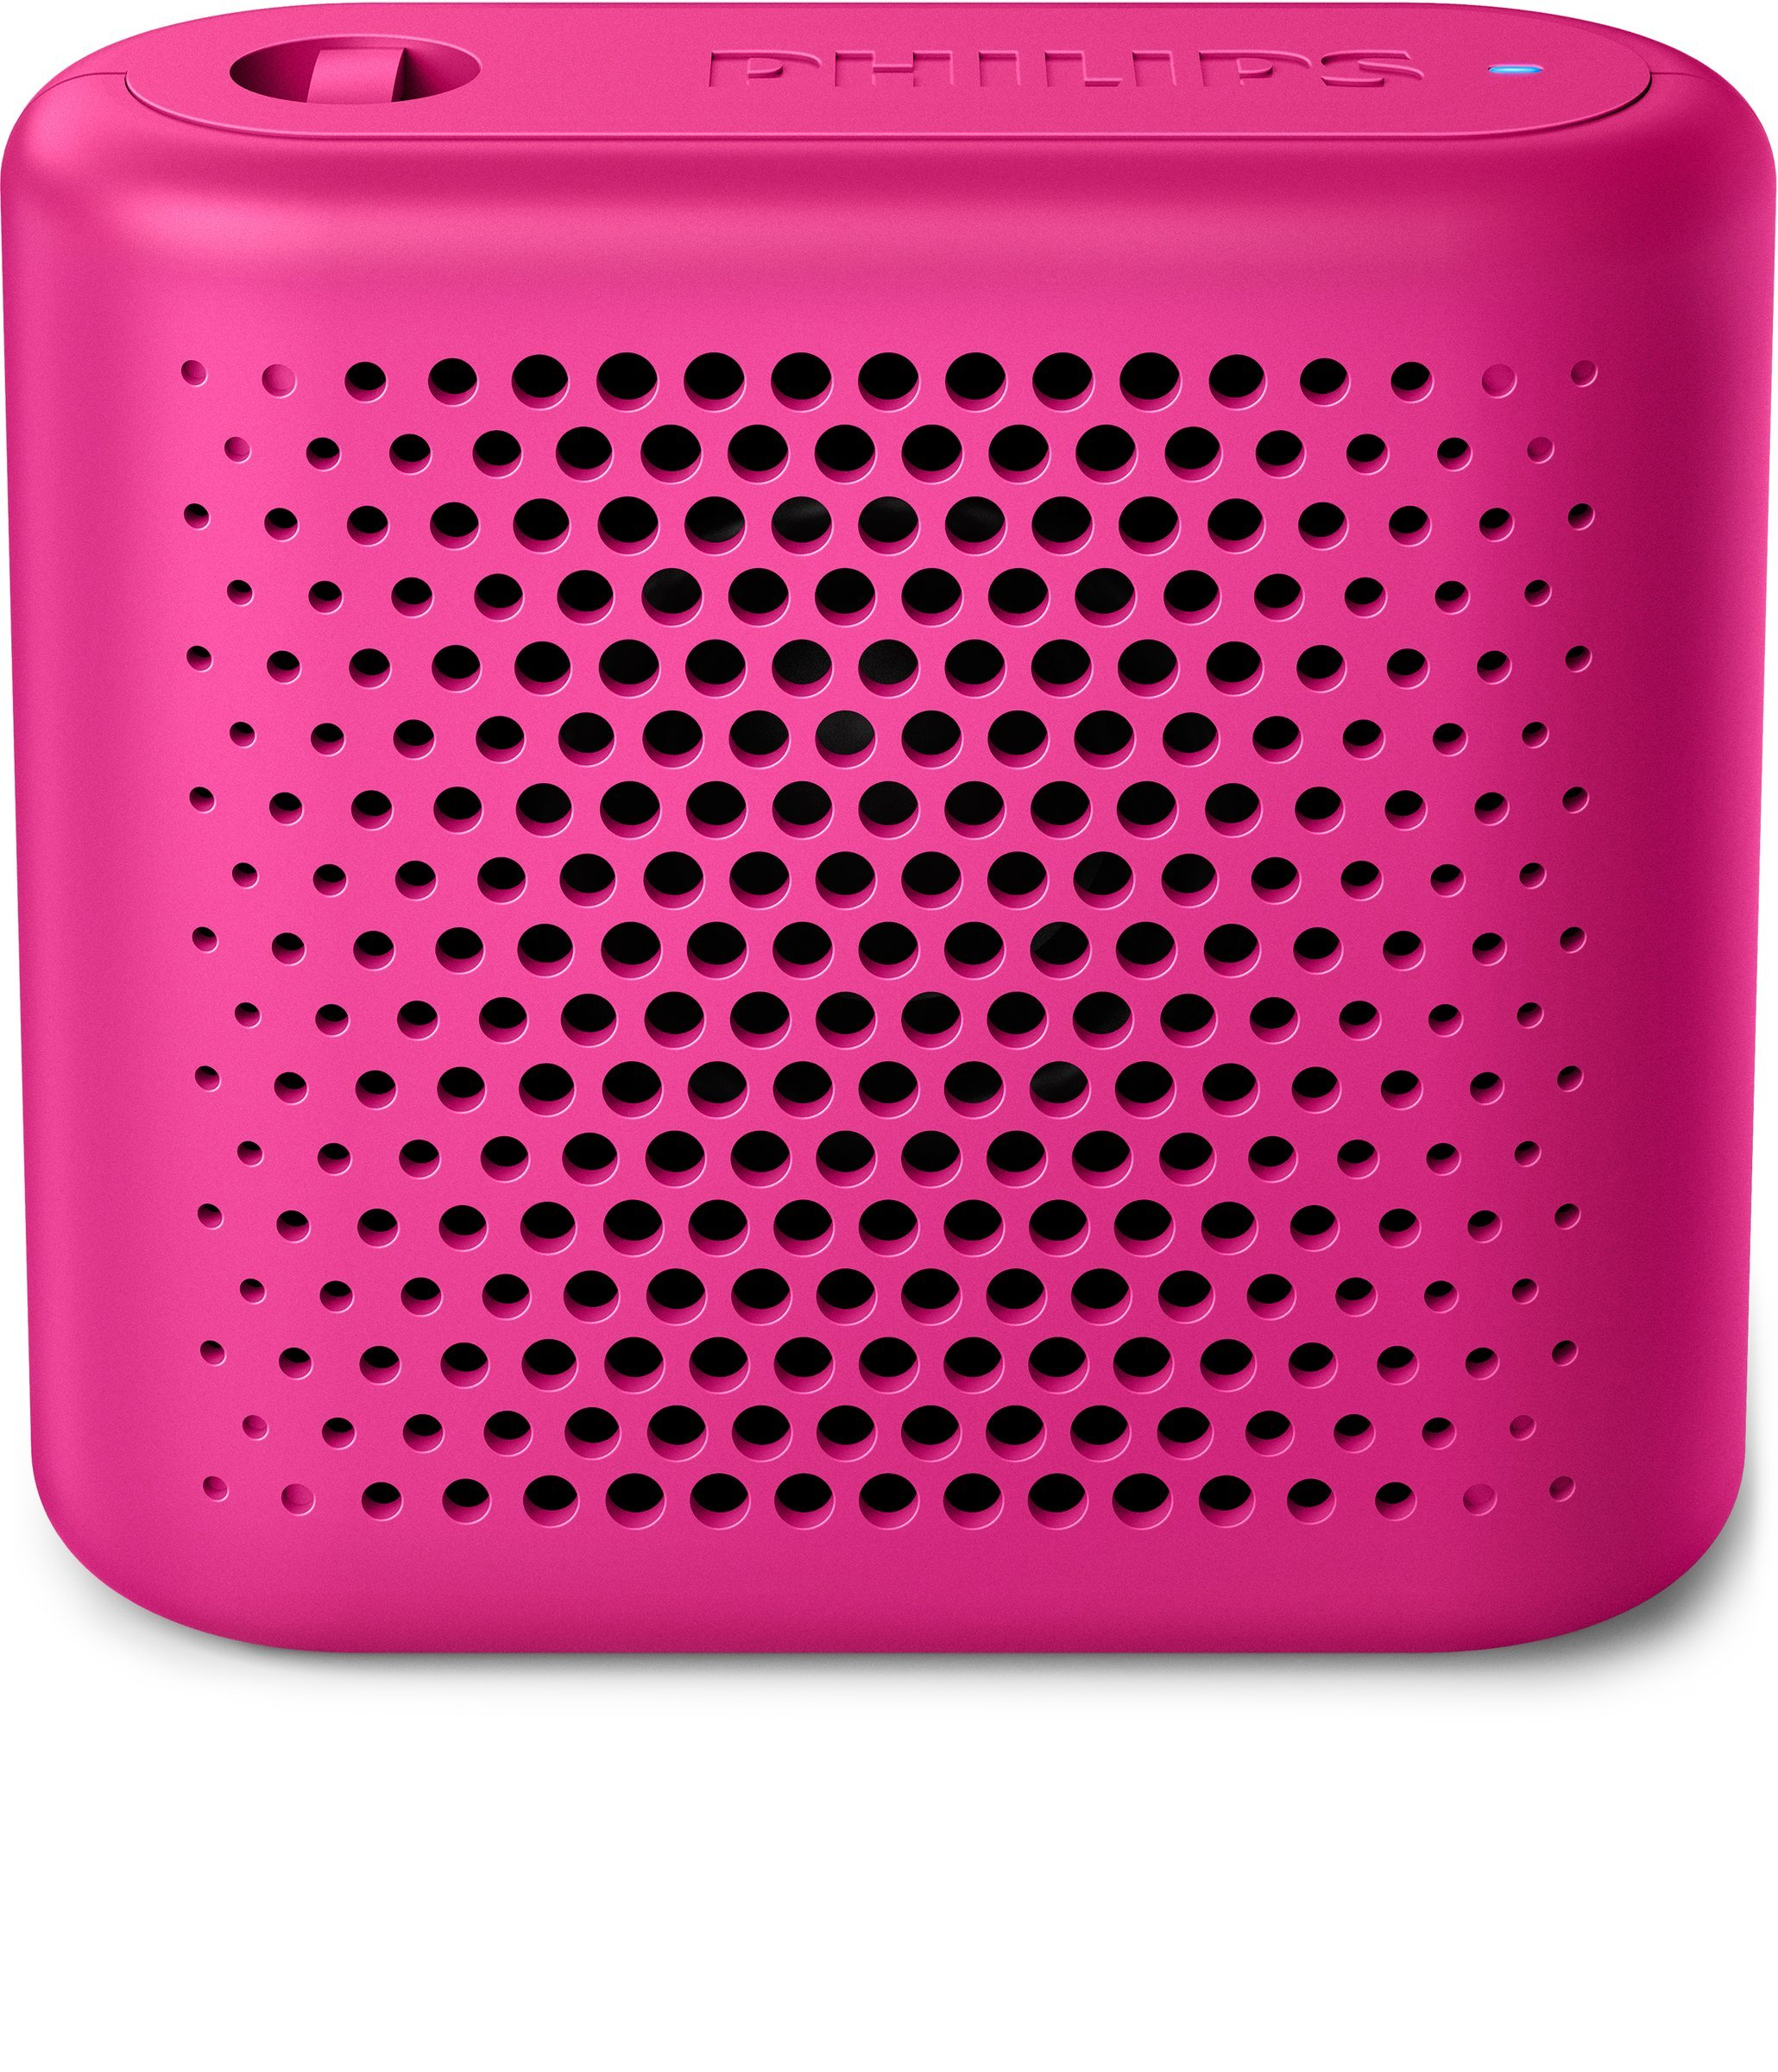 Philips BT55P - Mini Altavoz Bluetooth inalámbrico portatil, Compatible con Smartphones, iPhone, Android y Tablet, Rosa: Philips: Amazon.es: Electrónica